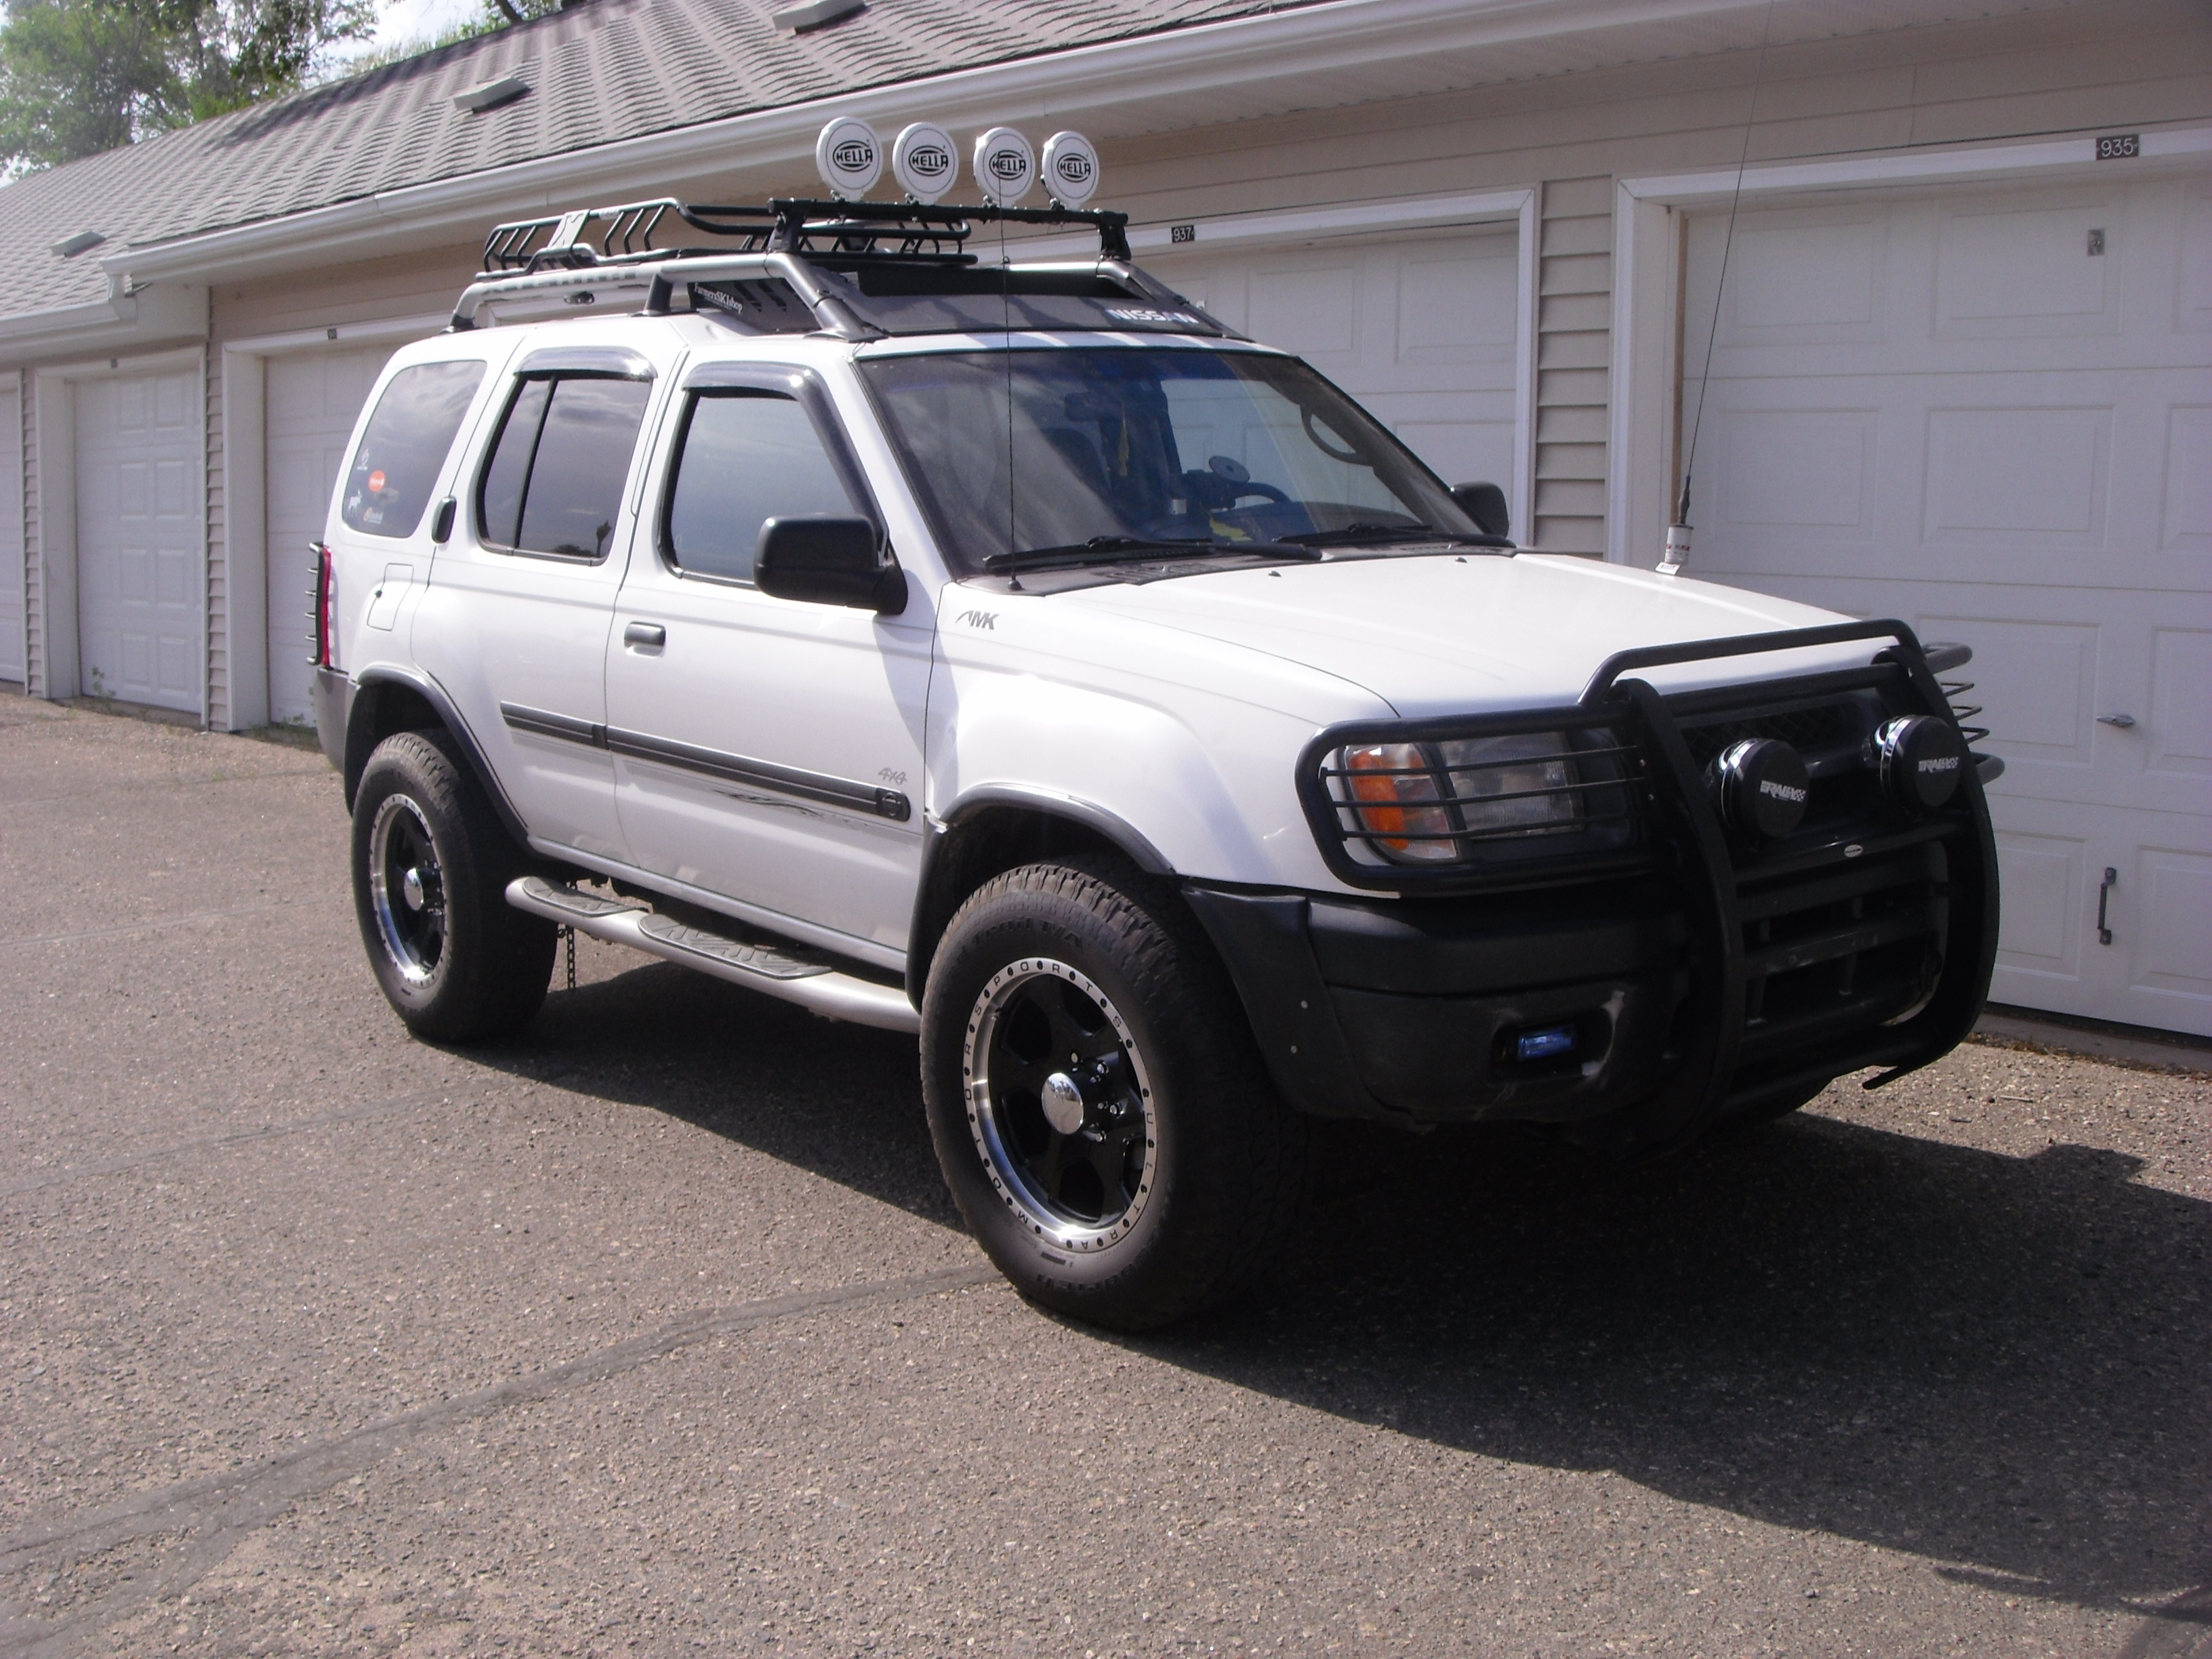 dmanisgnarly 2001 Nissan Xterra Specs, Photos, Modification Info at